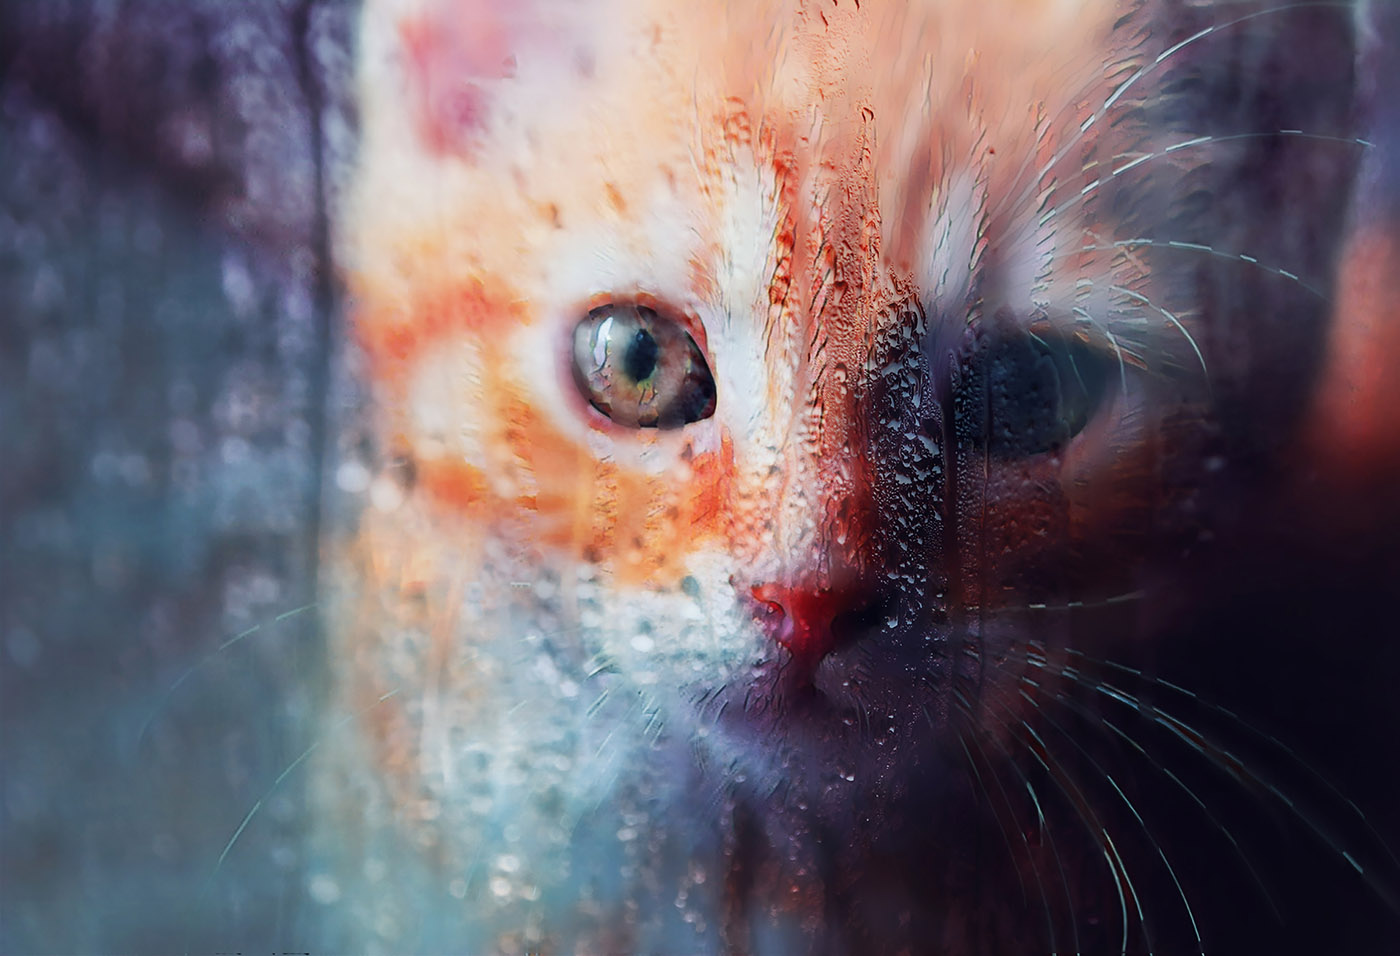 Sad Kitty Cat Stock Photo - stock photos and royalty-free images